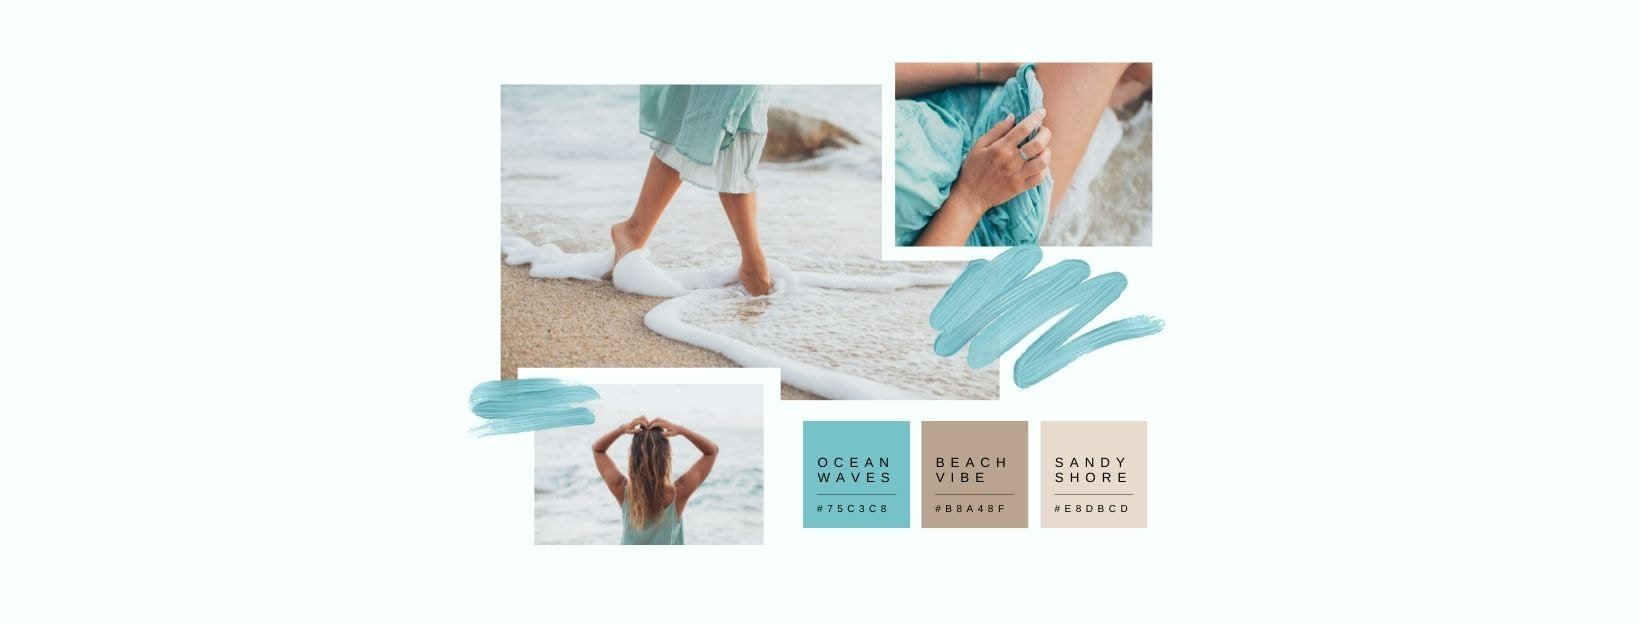 BANNER-Canva-Sky Blue and Brown Soft and Dainty Color Inspiration Moodboard Photo Collage